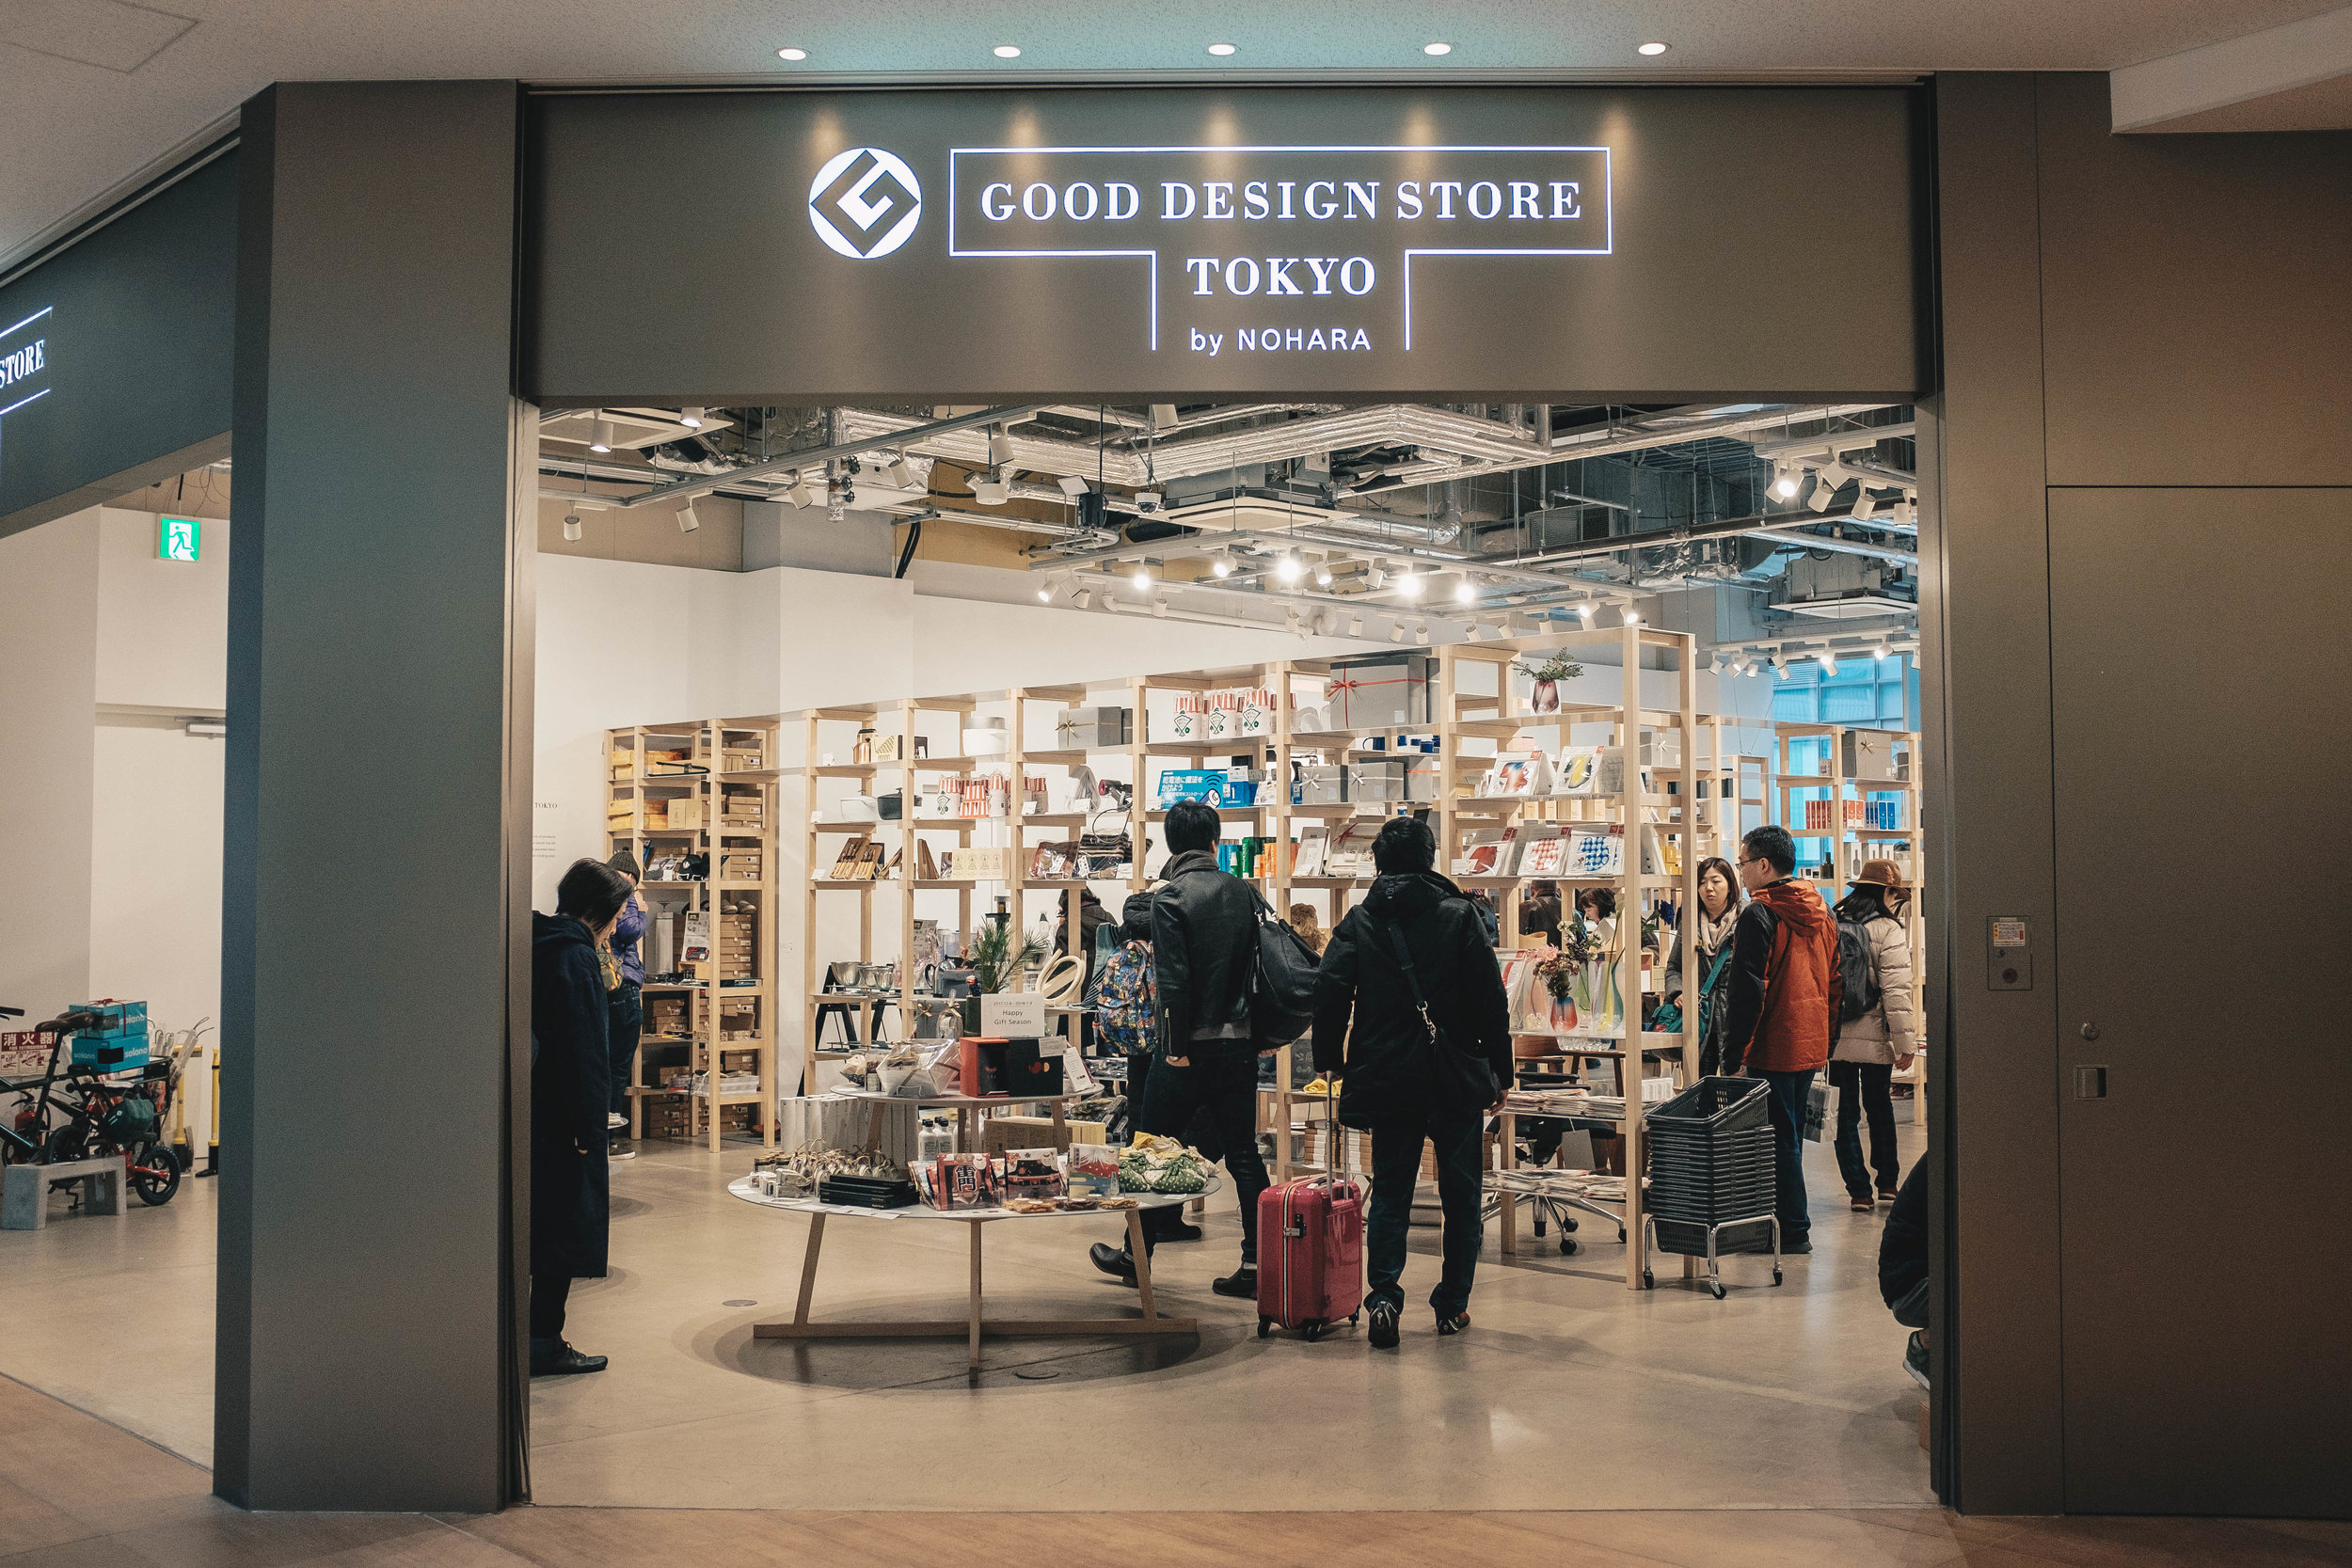 The Good Design Store hawks award winning lifestyle goods in one of nicest shopping malls in Japan